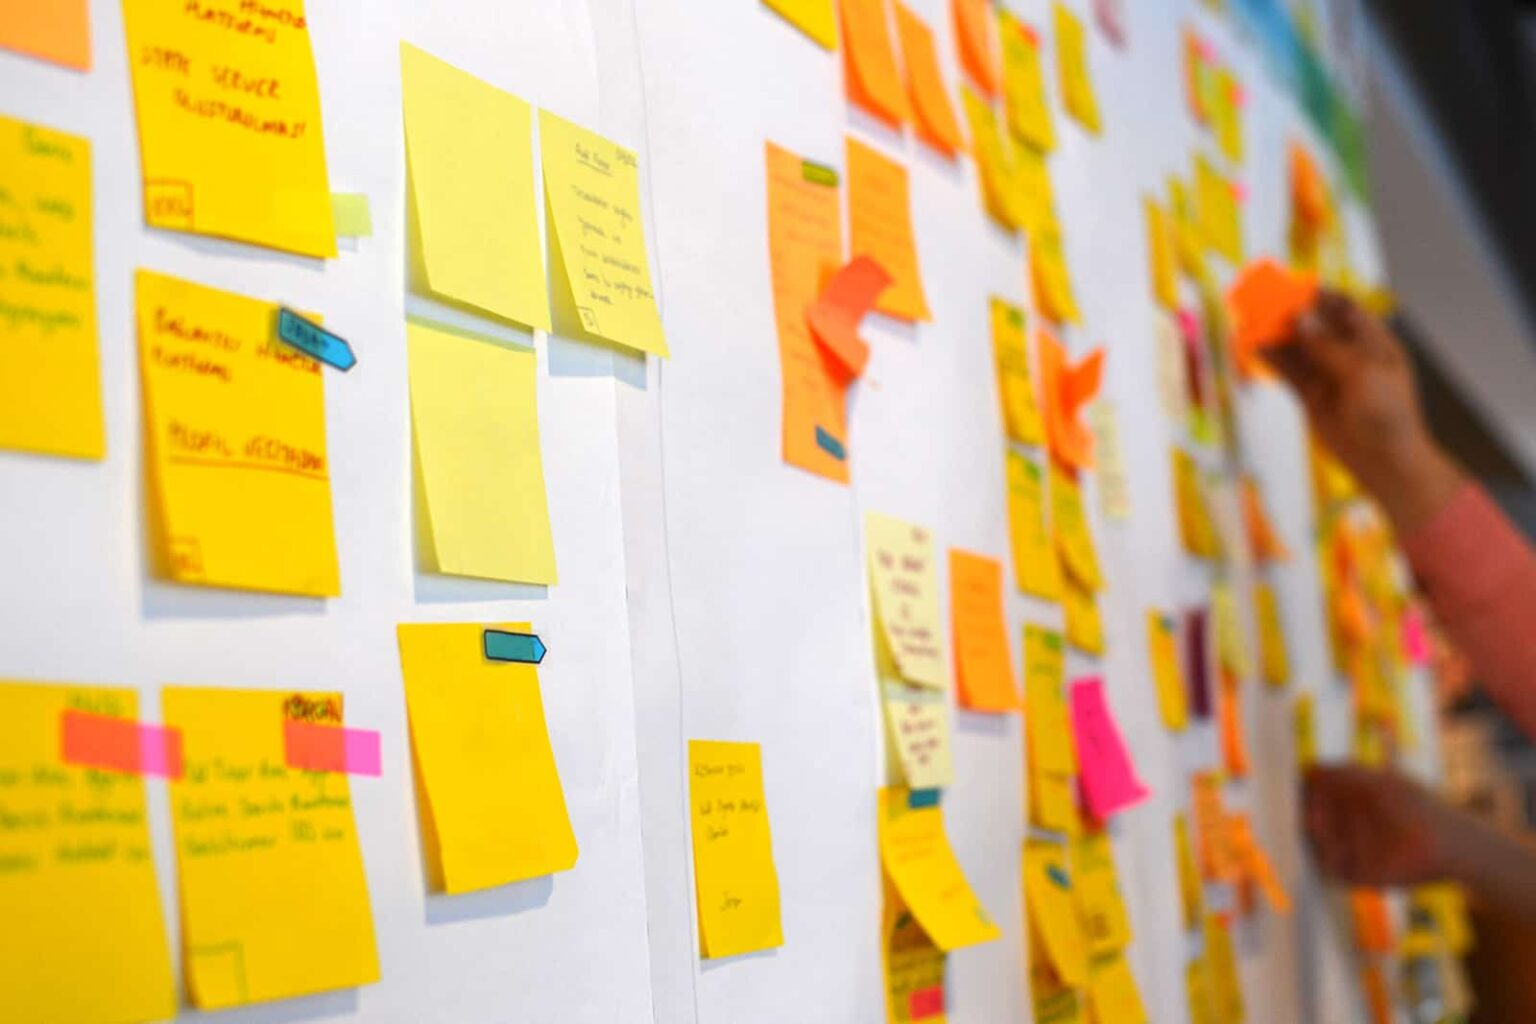 Kanban Board, is one of the prerequisites of agile working methodology